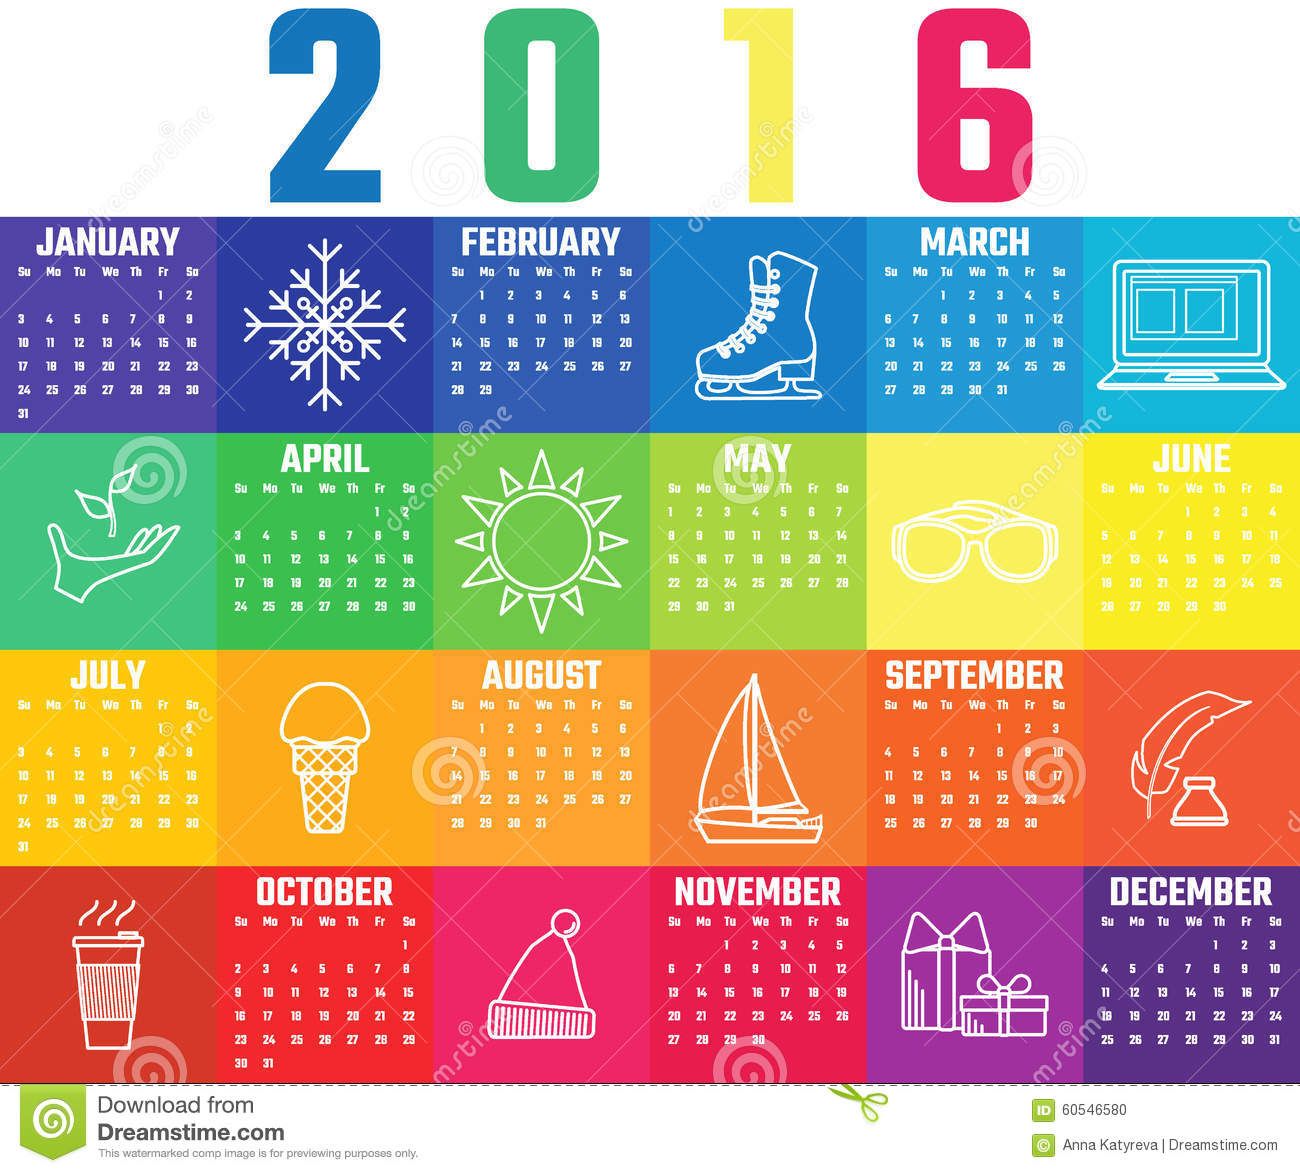 Calendar Month Illustration : Calendar template stock illustration image